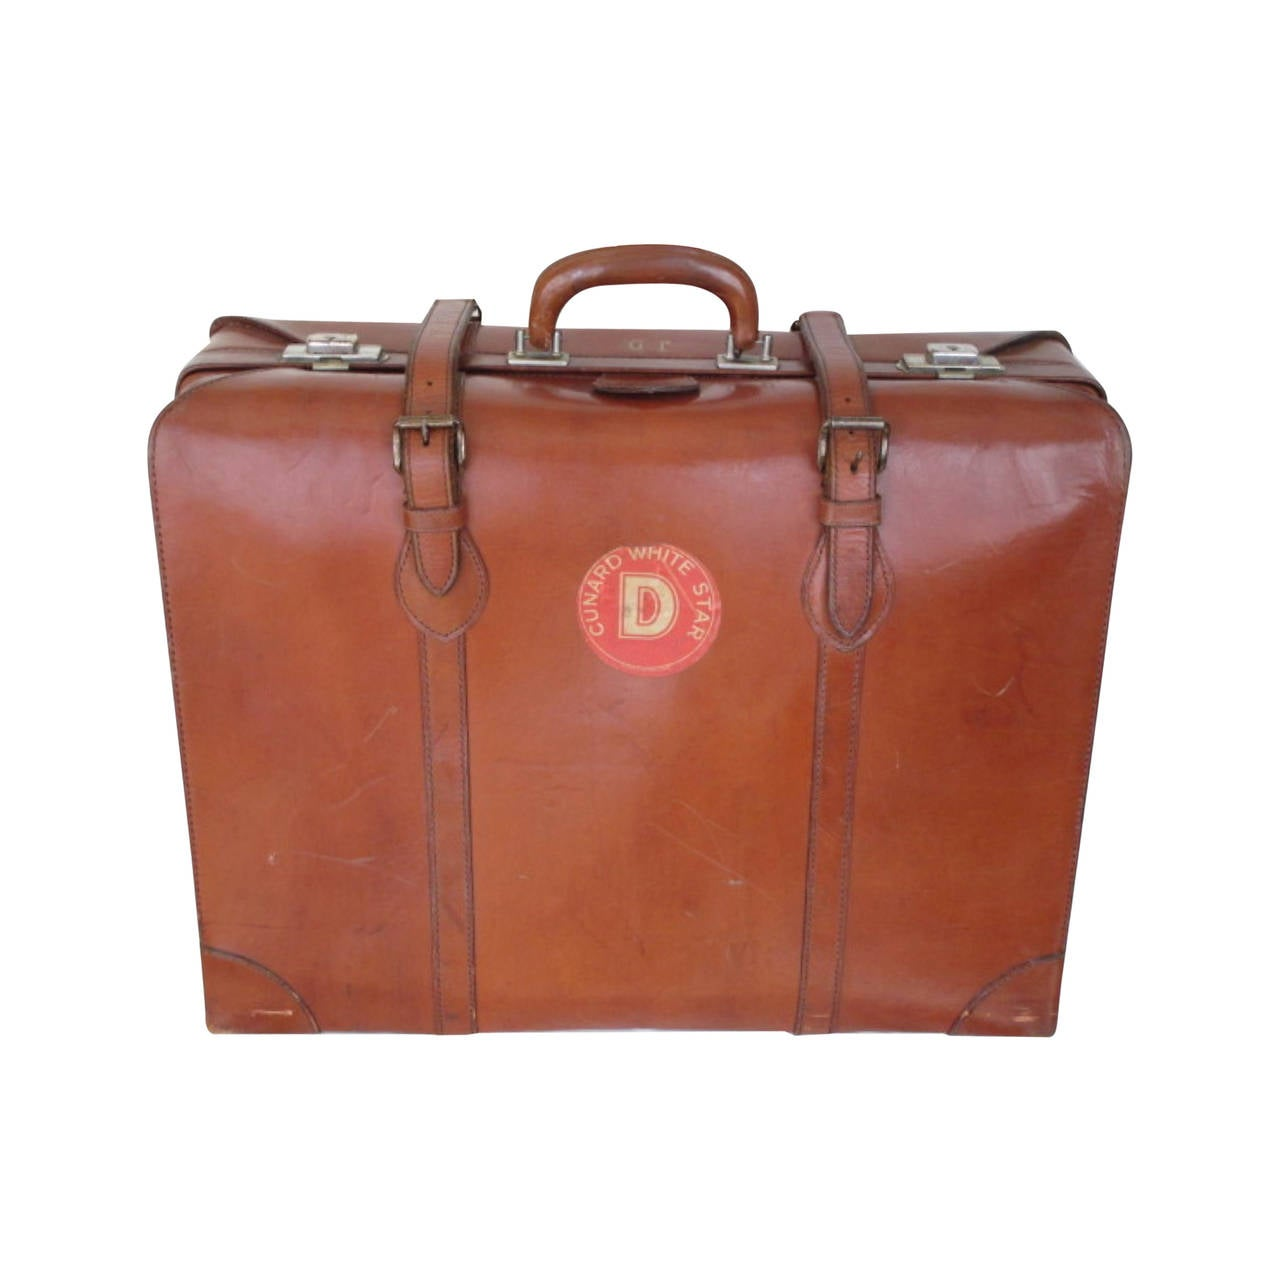 1930's brown leather suitcase with Cunard White Star D-Deck label ...